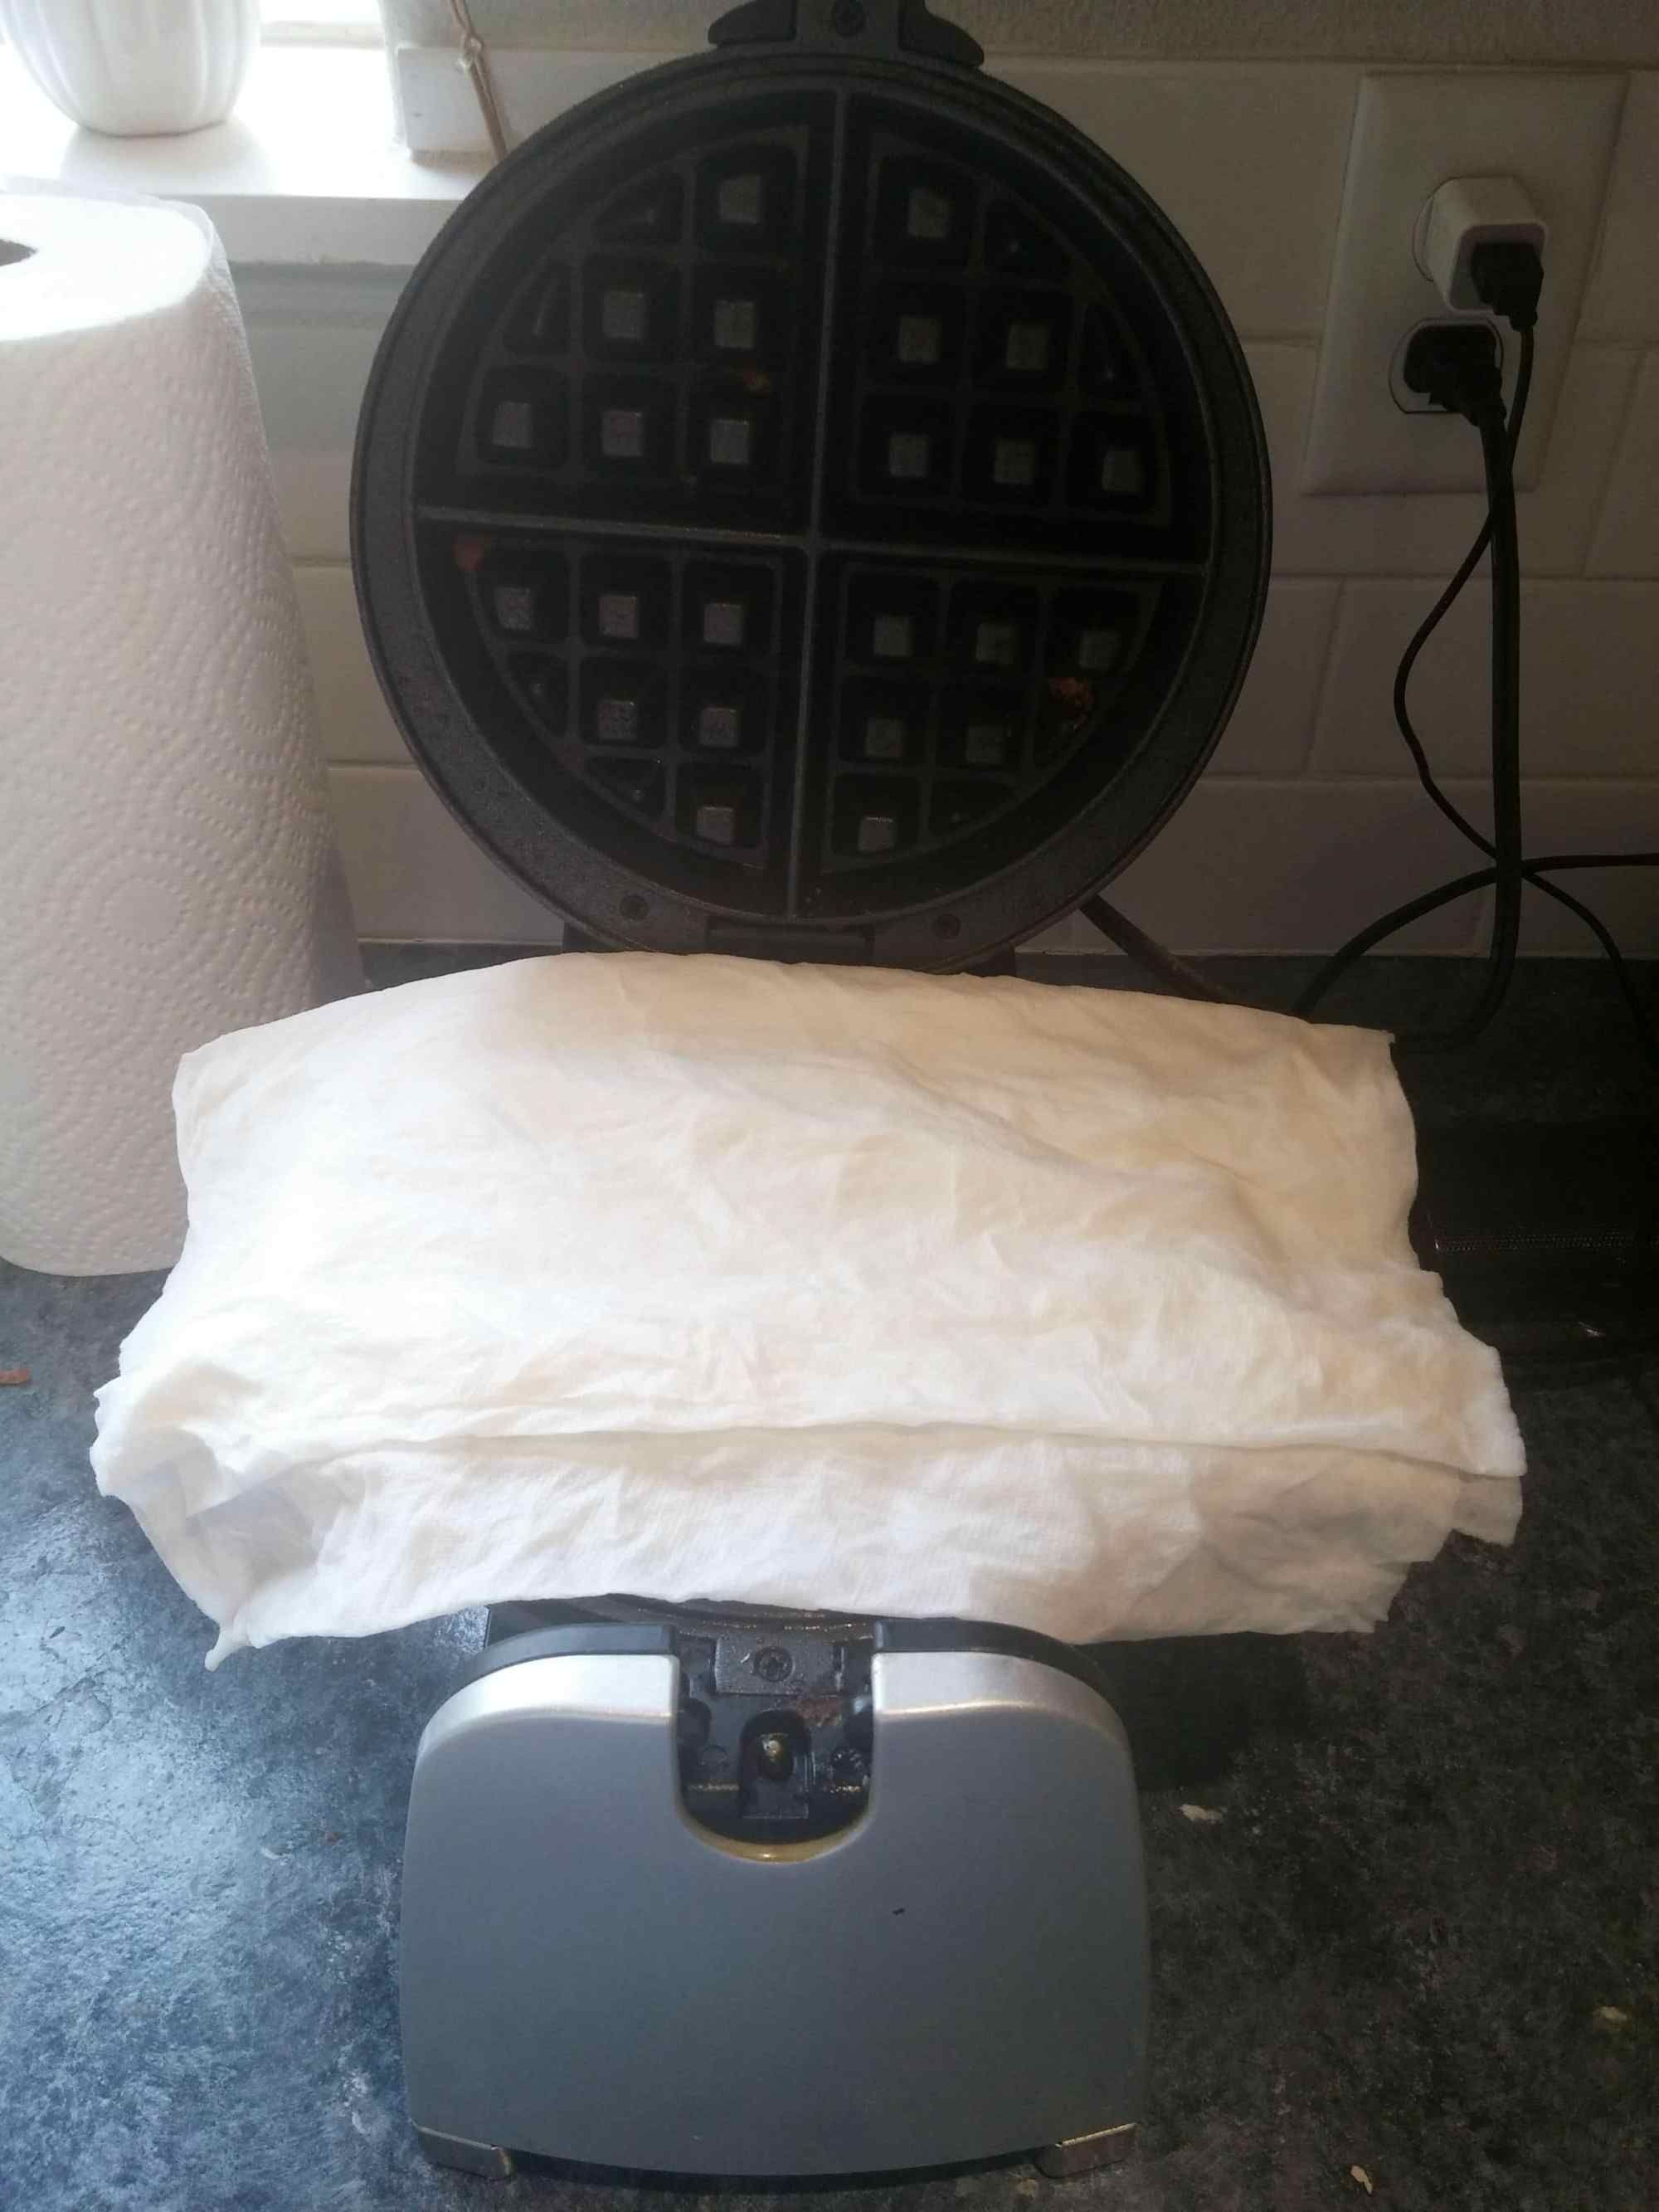 How To Clean A Waffle Iron Effortlessly Waffle Iron Cleaning Hacks House Cleaning Tips